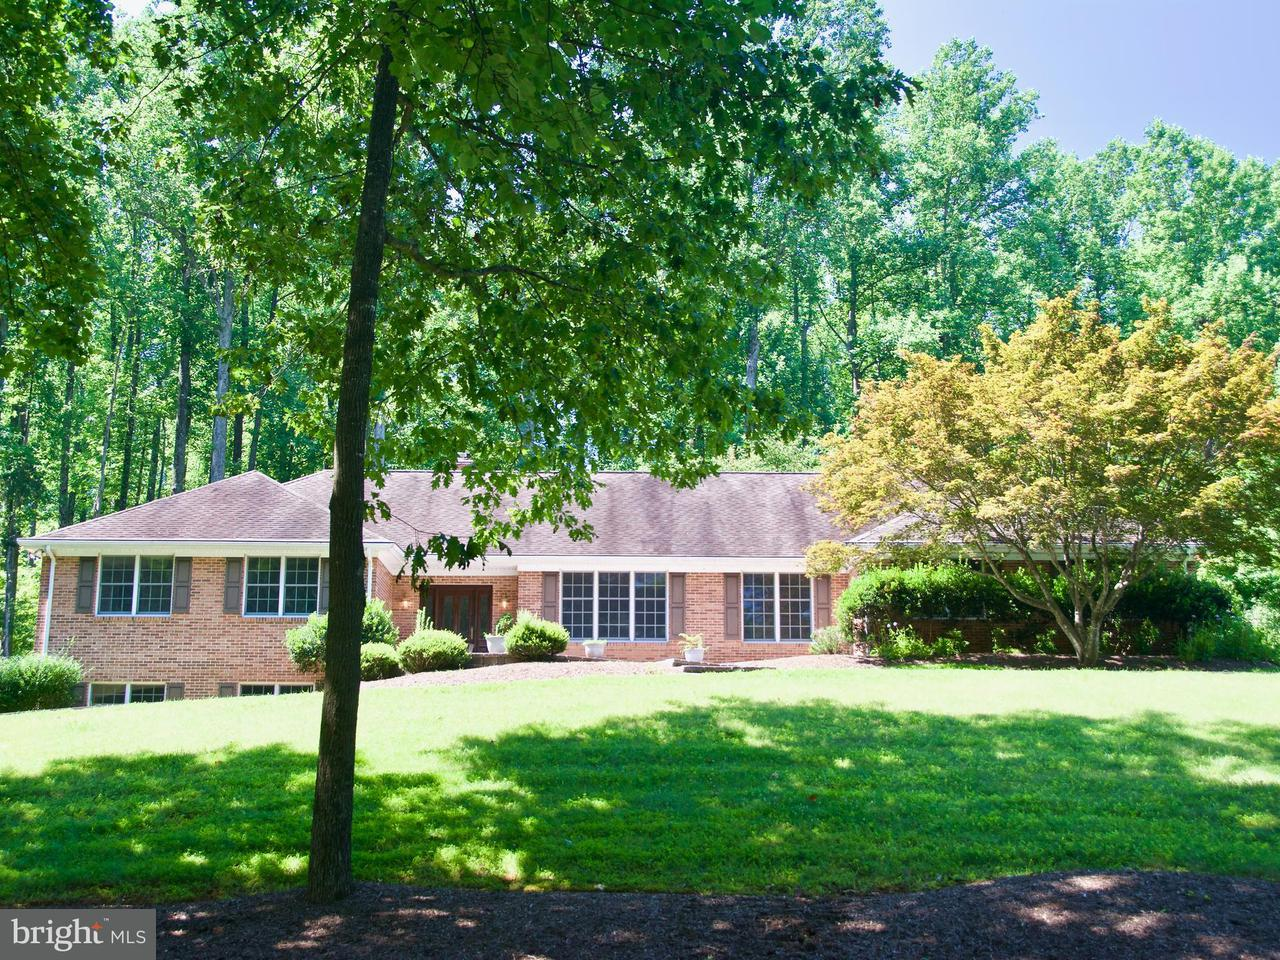 Single Family Home for Sale at 5920 HUNTON WOOD Drive 5920 HUNTON WOOD Drive Broad Run, Virginia 20137 United States